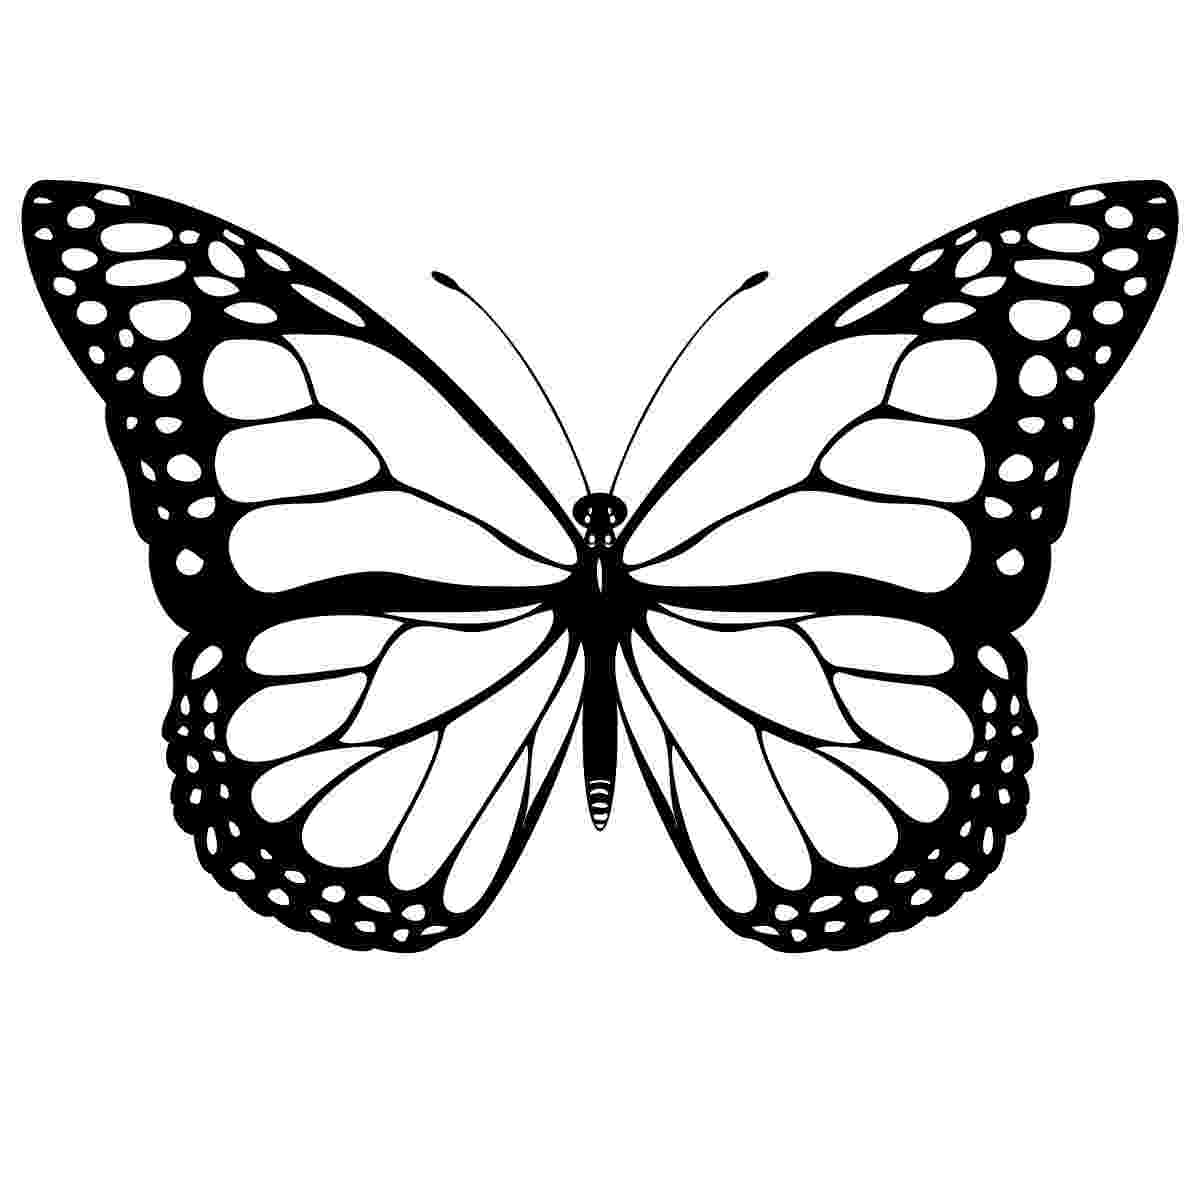 butterfly pictures to color and print free printable butterfly coloring pages for kids pictures to and color print butterfly